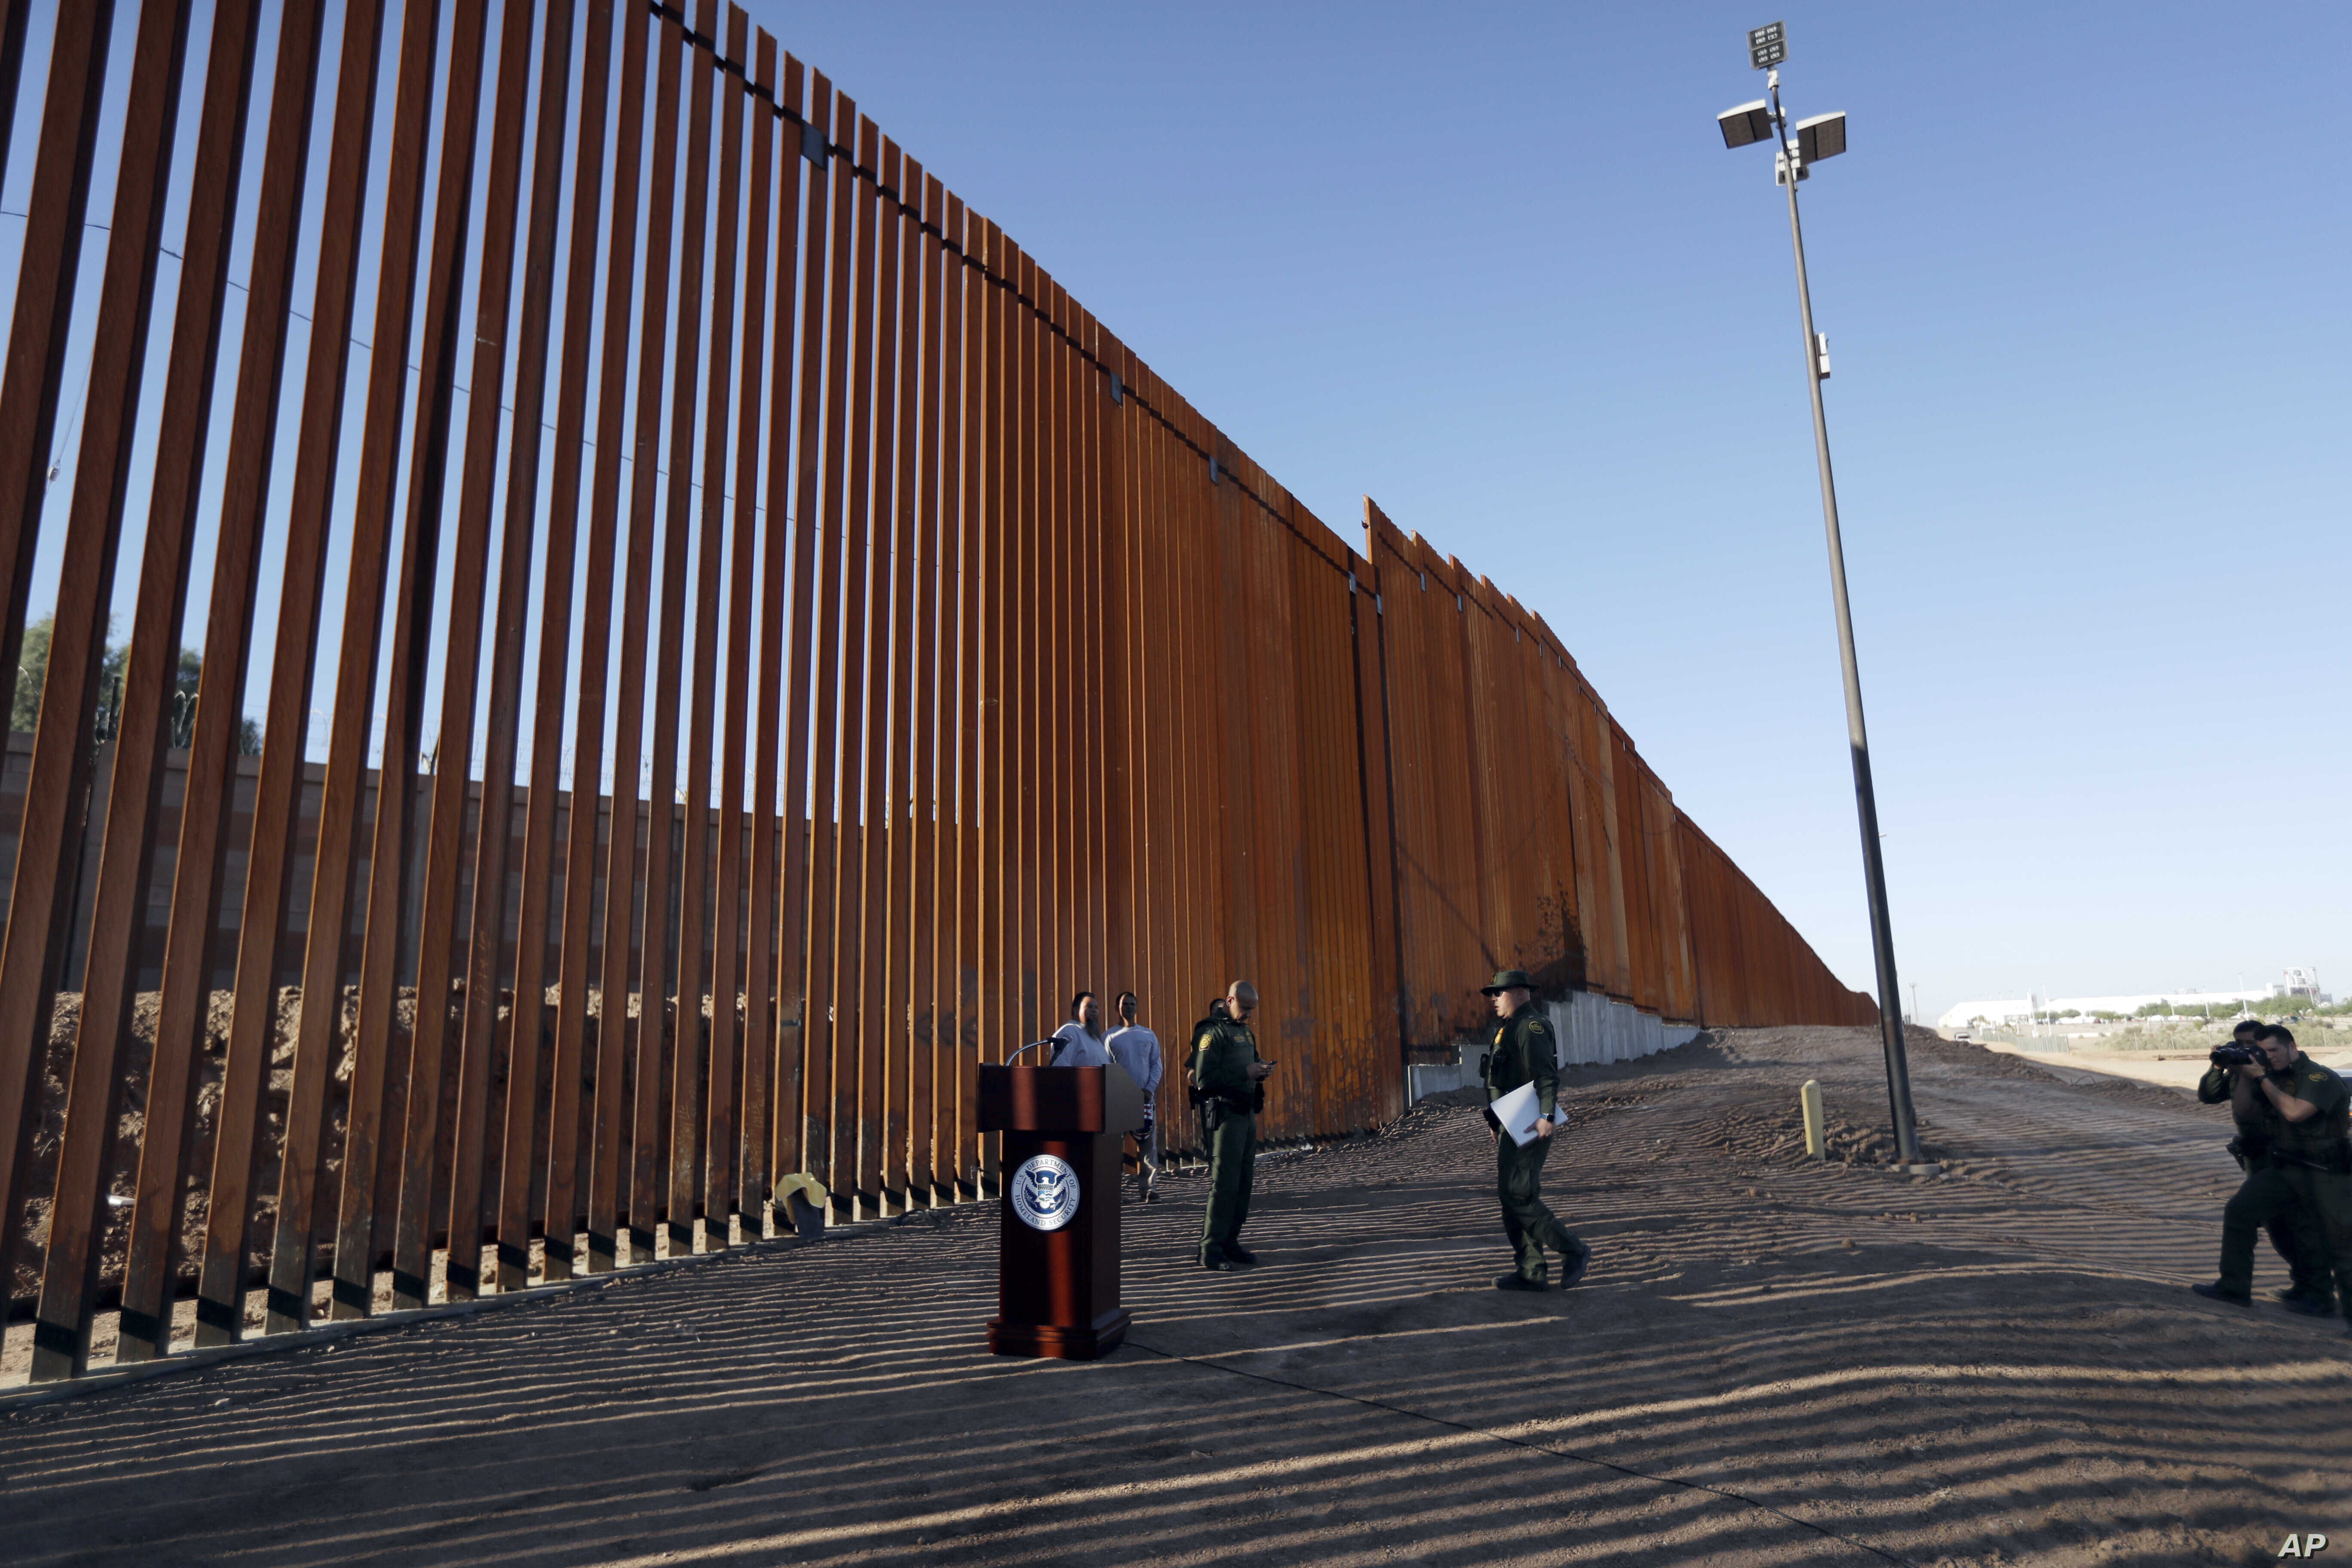 Border Patrol agents and others stand next to a new stretch of border wall in Calexico, Calif., Oct. 26, 2018.